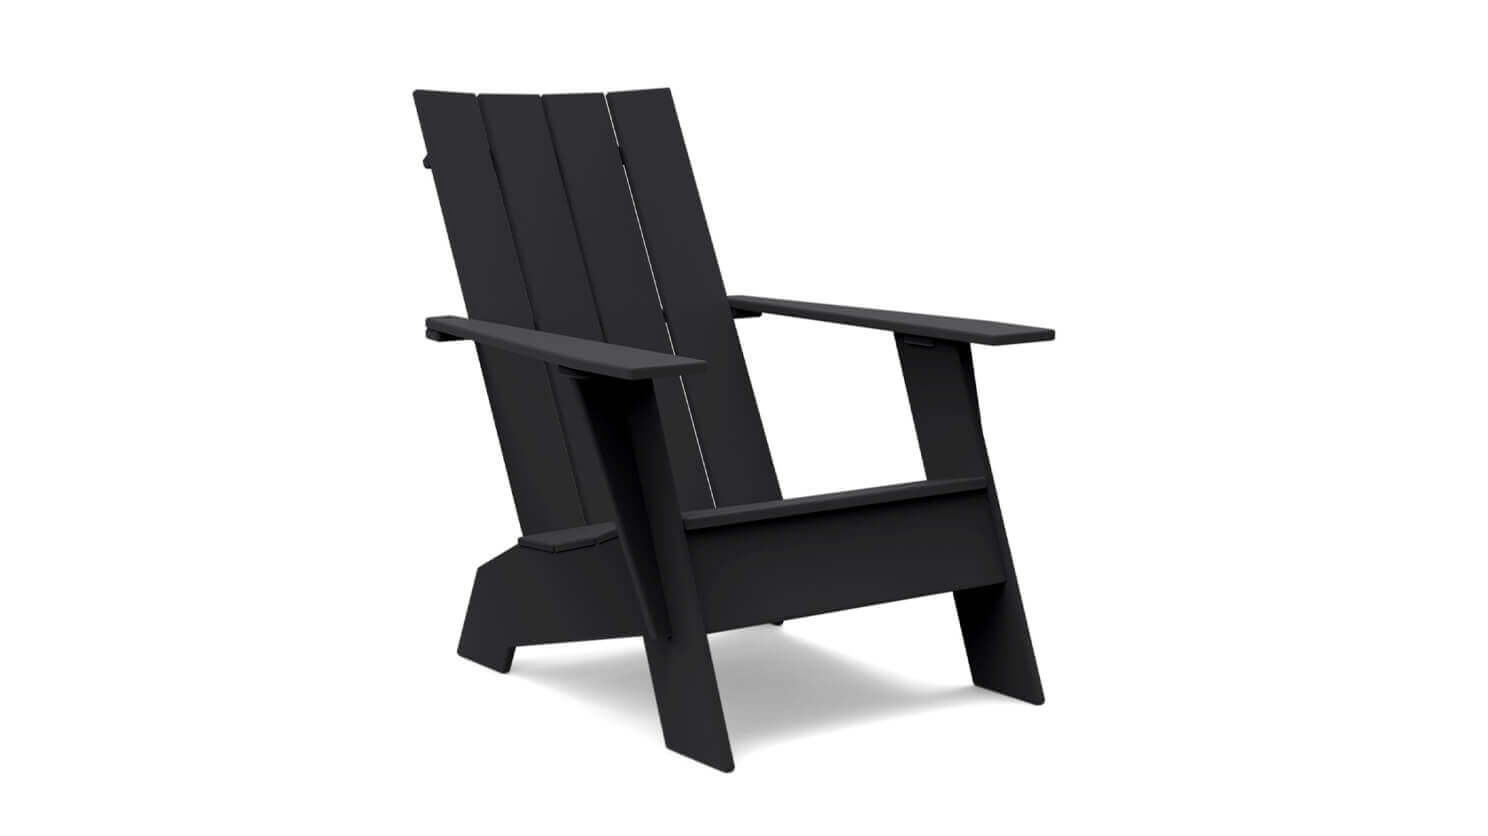 Marvelous Adirondack Chair Eq3 Beatyapartments Chair Design Images Beatyapartmentscom